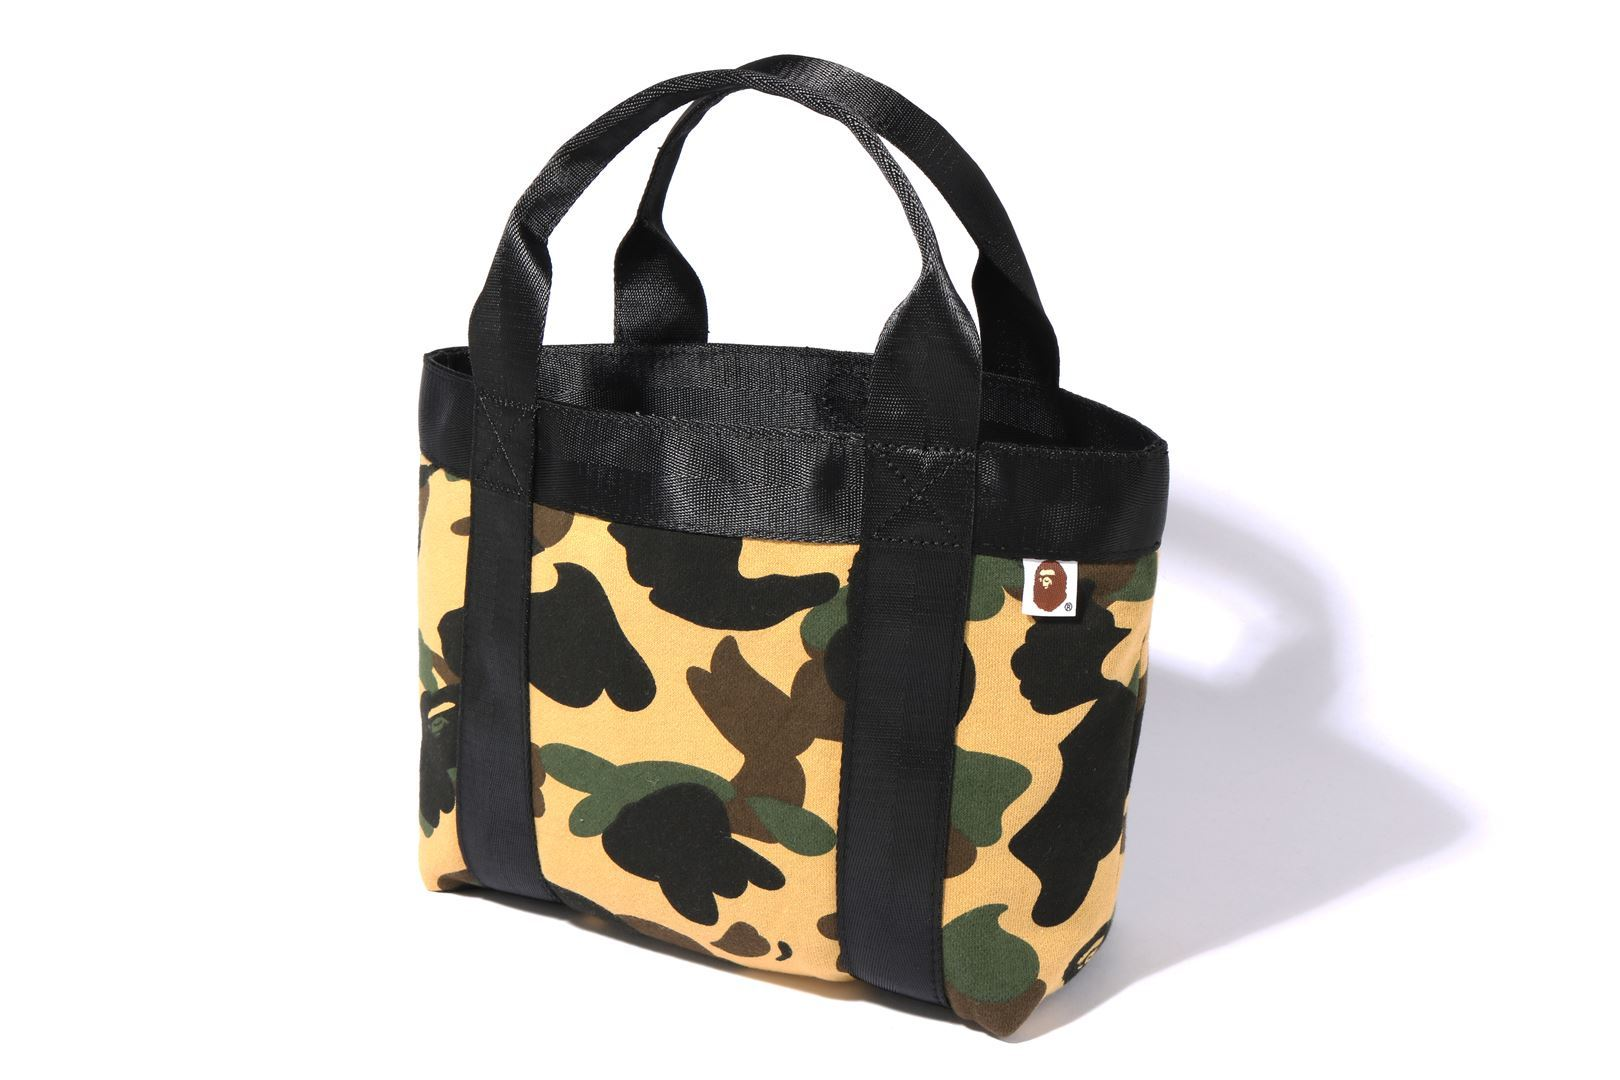 1ST CAMO SWEAT TOTE BAG_a0174495_11495576.jpg